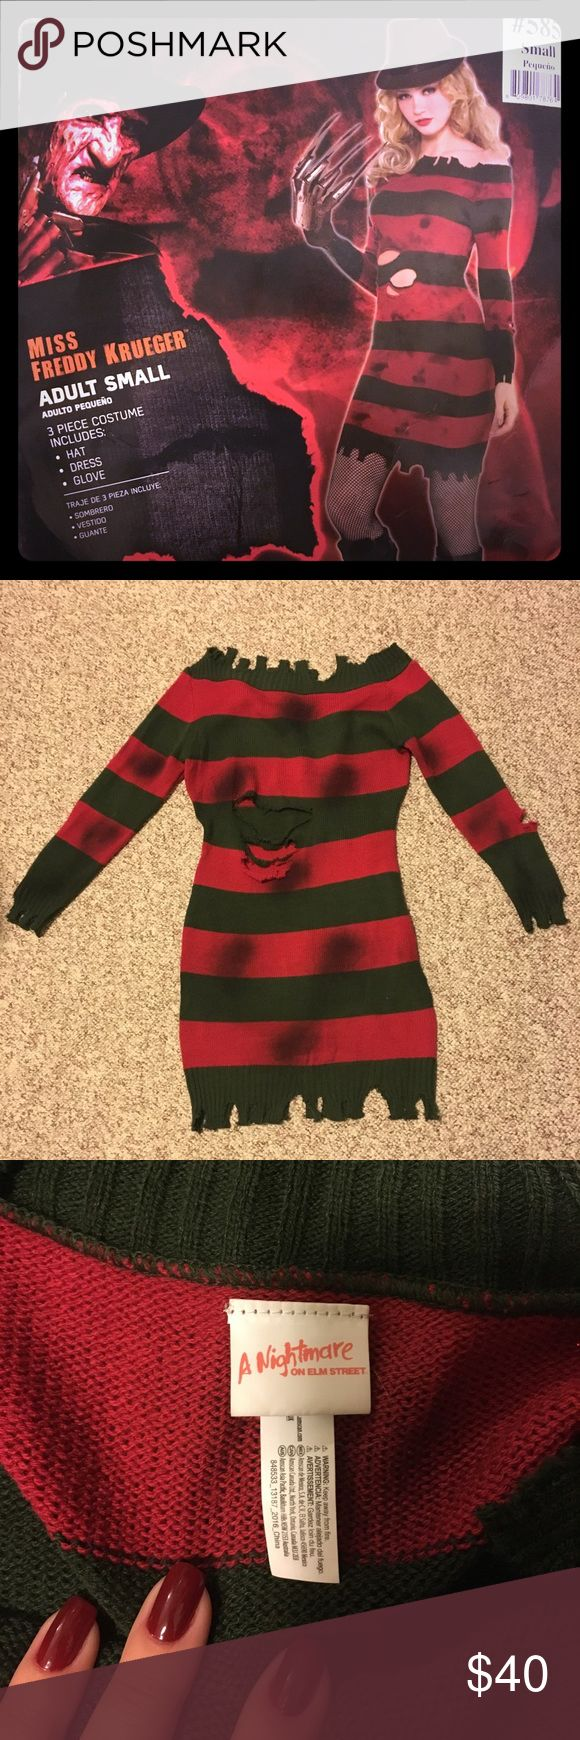 Worn One Time ONLY!!!! Ms Freddy Krueger costume!! Only wore this once to a party for a couple of hours! LIKE NEW!!! Comes with all the accessories: Hat Full Glove with blades. Freddy Dress   All you will need to do to look awesome for halloween is some sexy Freddy Krueger makeup and you are good to go!!!   Dress is stretchy for a nice curve hugging fit and knit fabric is soft, warm and comfortable! Nightmare on Elm St Other